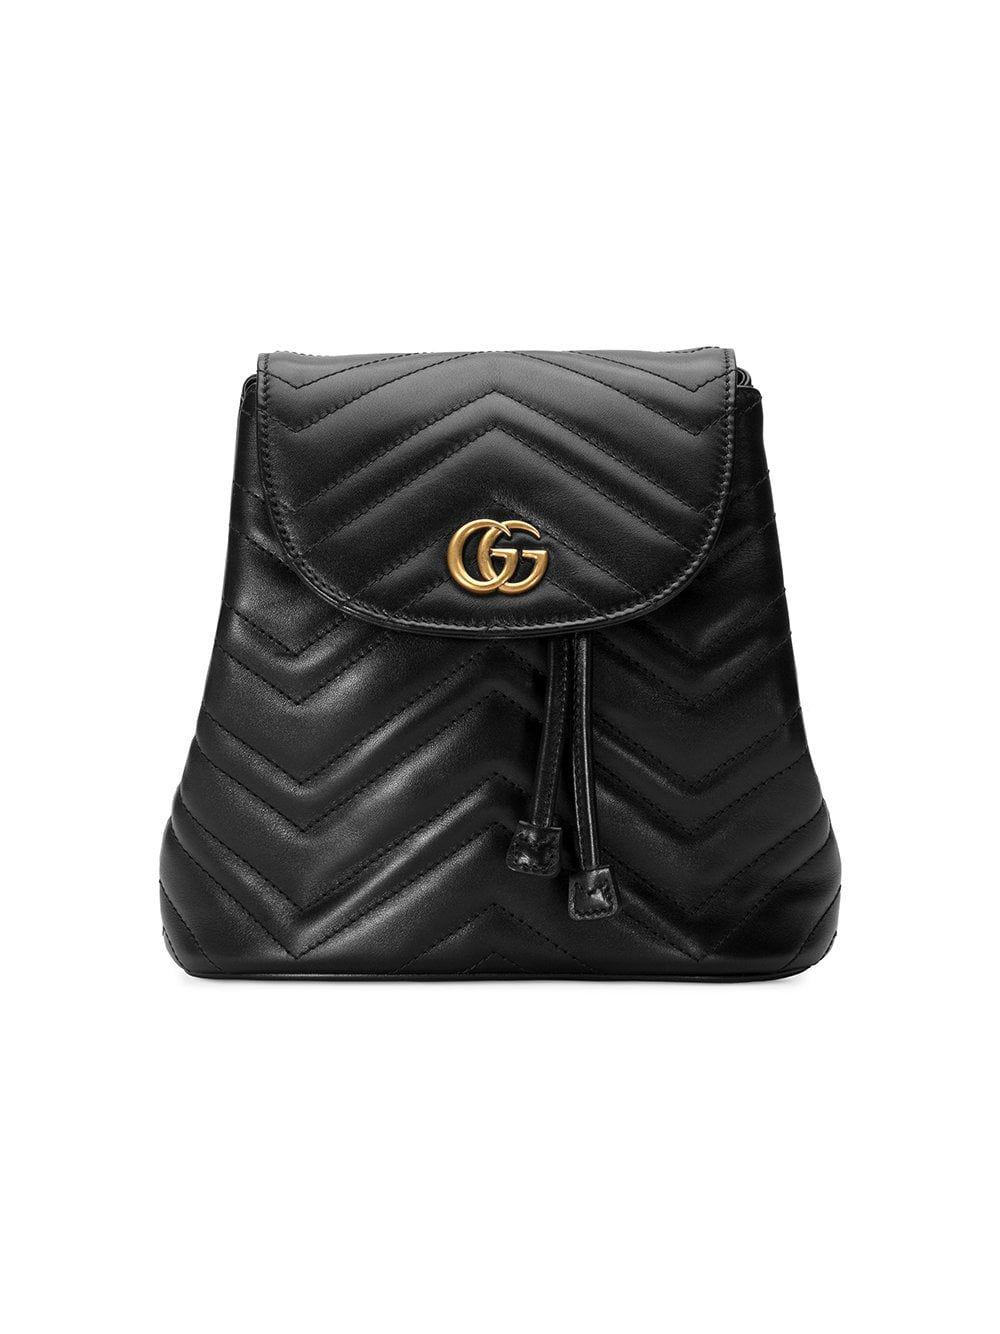 Lyst - Gucci Women s Black Leather Backpack in Black 67f09e0b0e13b